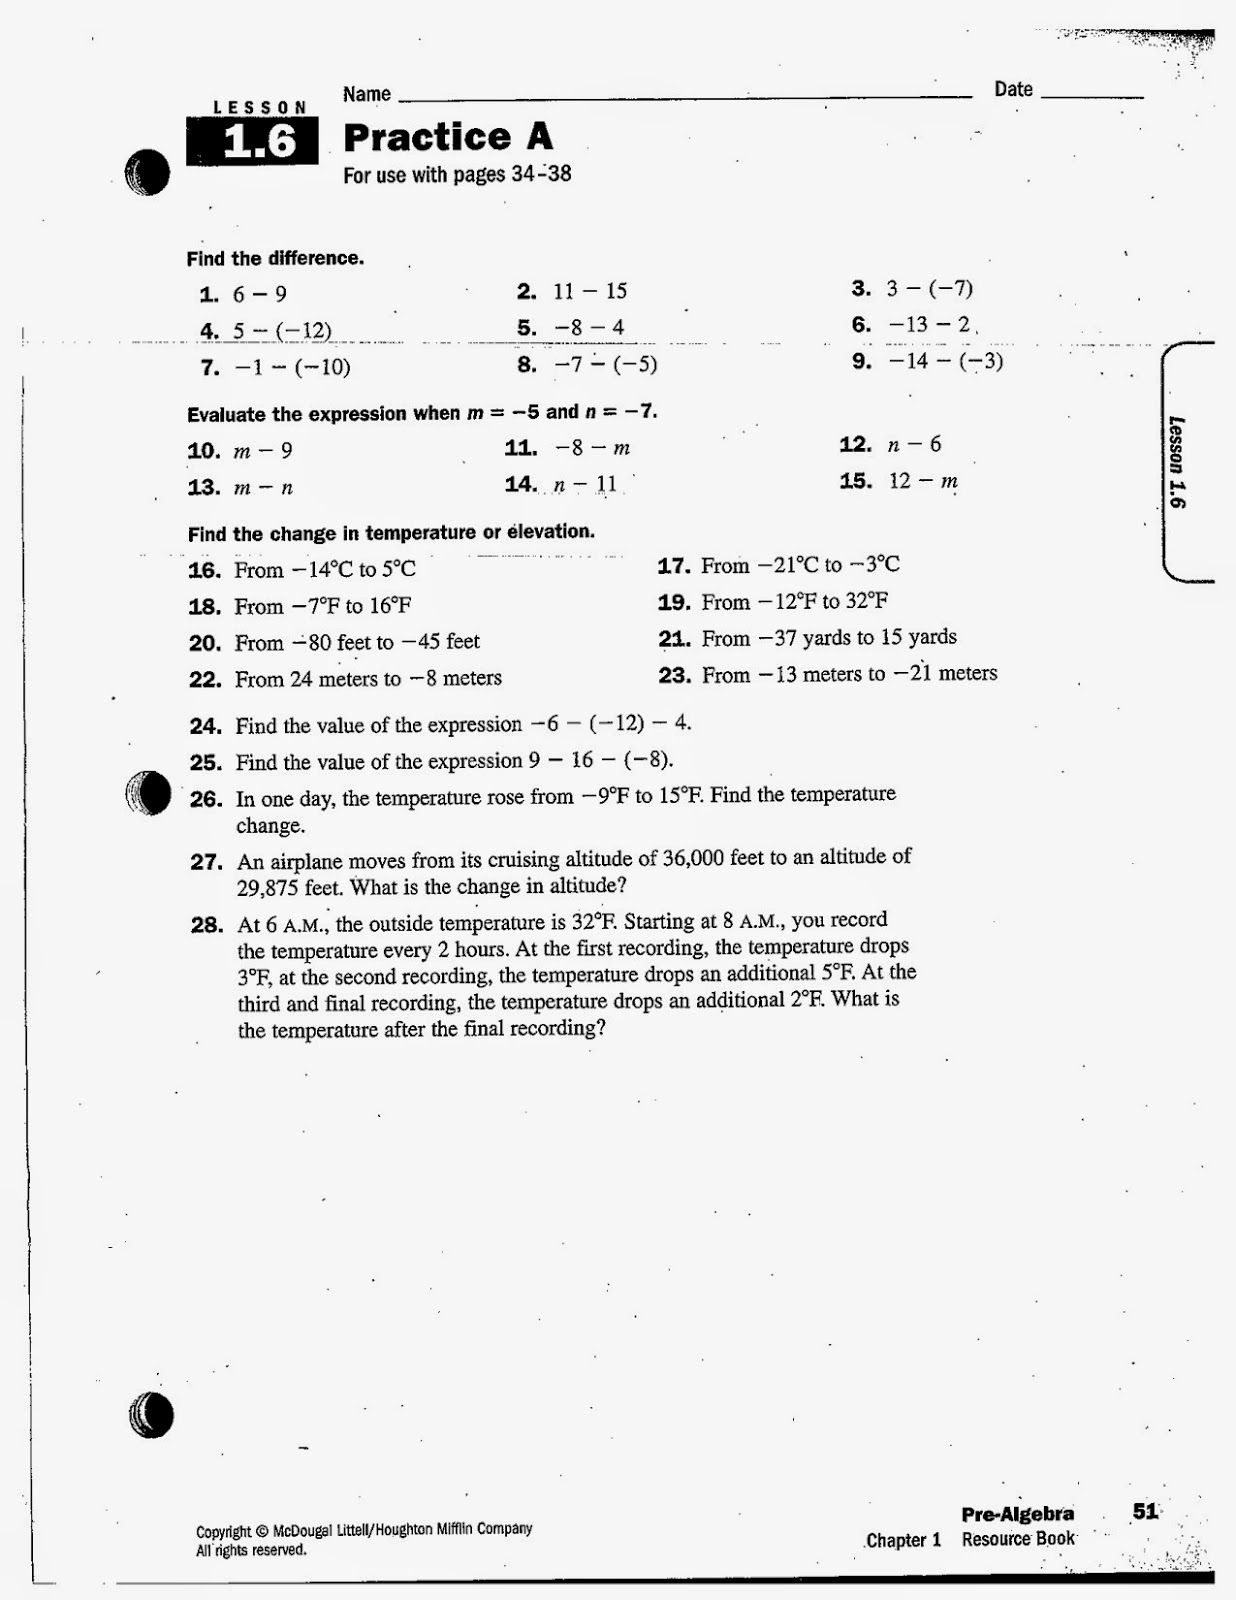 Subtraction Of Integers Worksheet